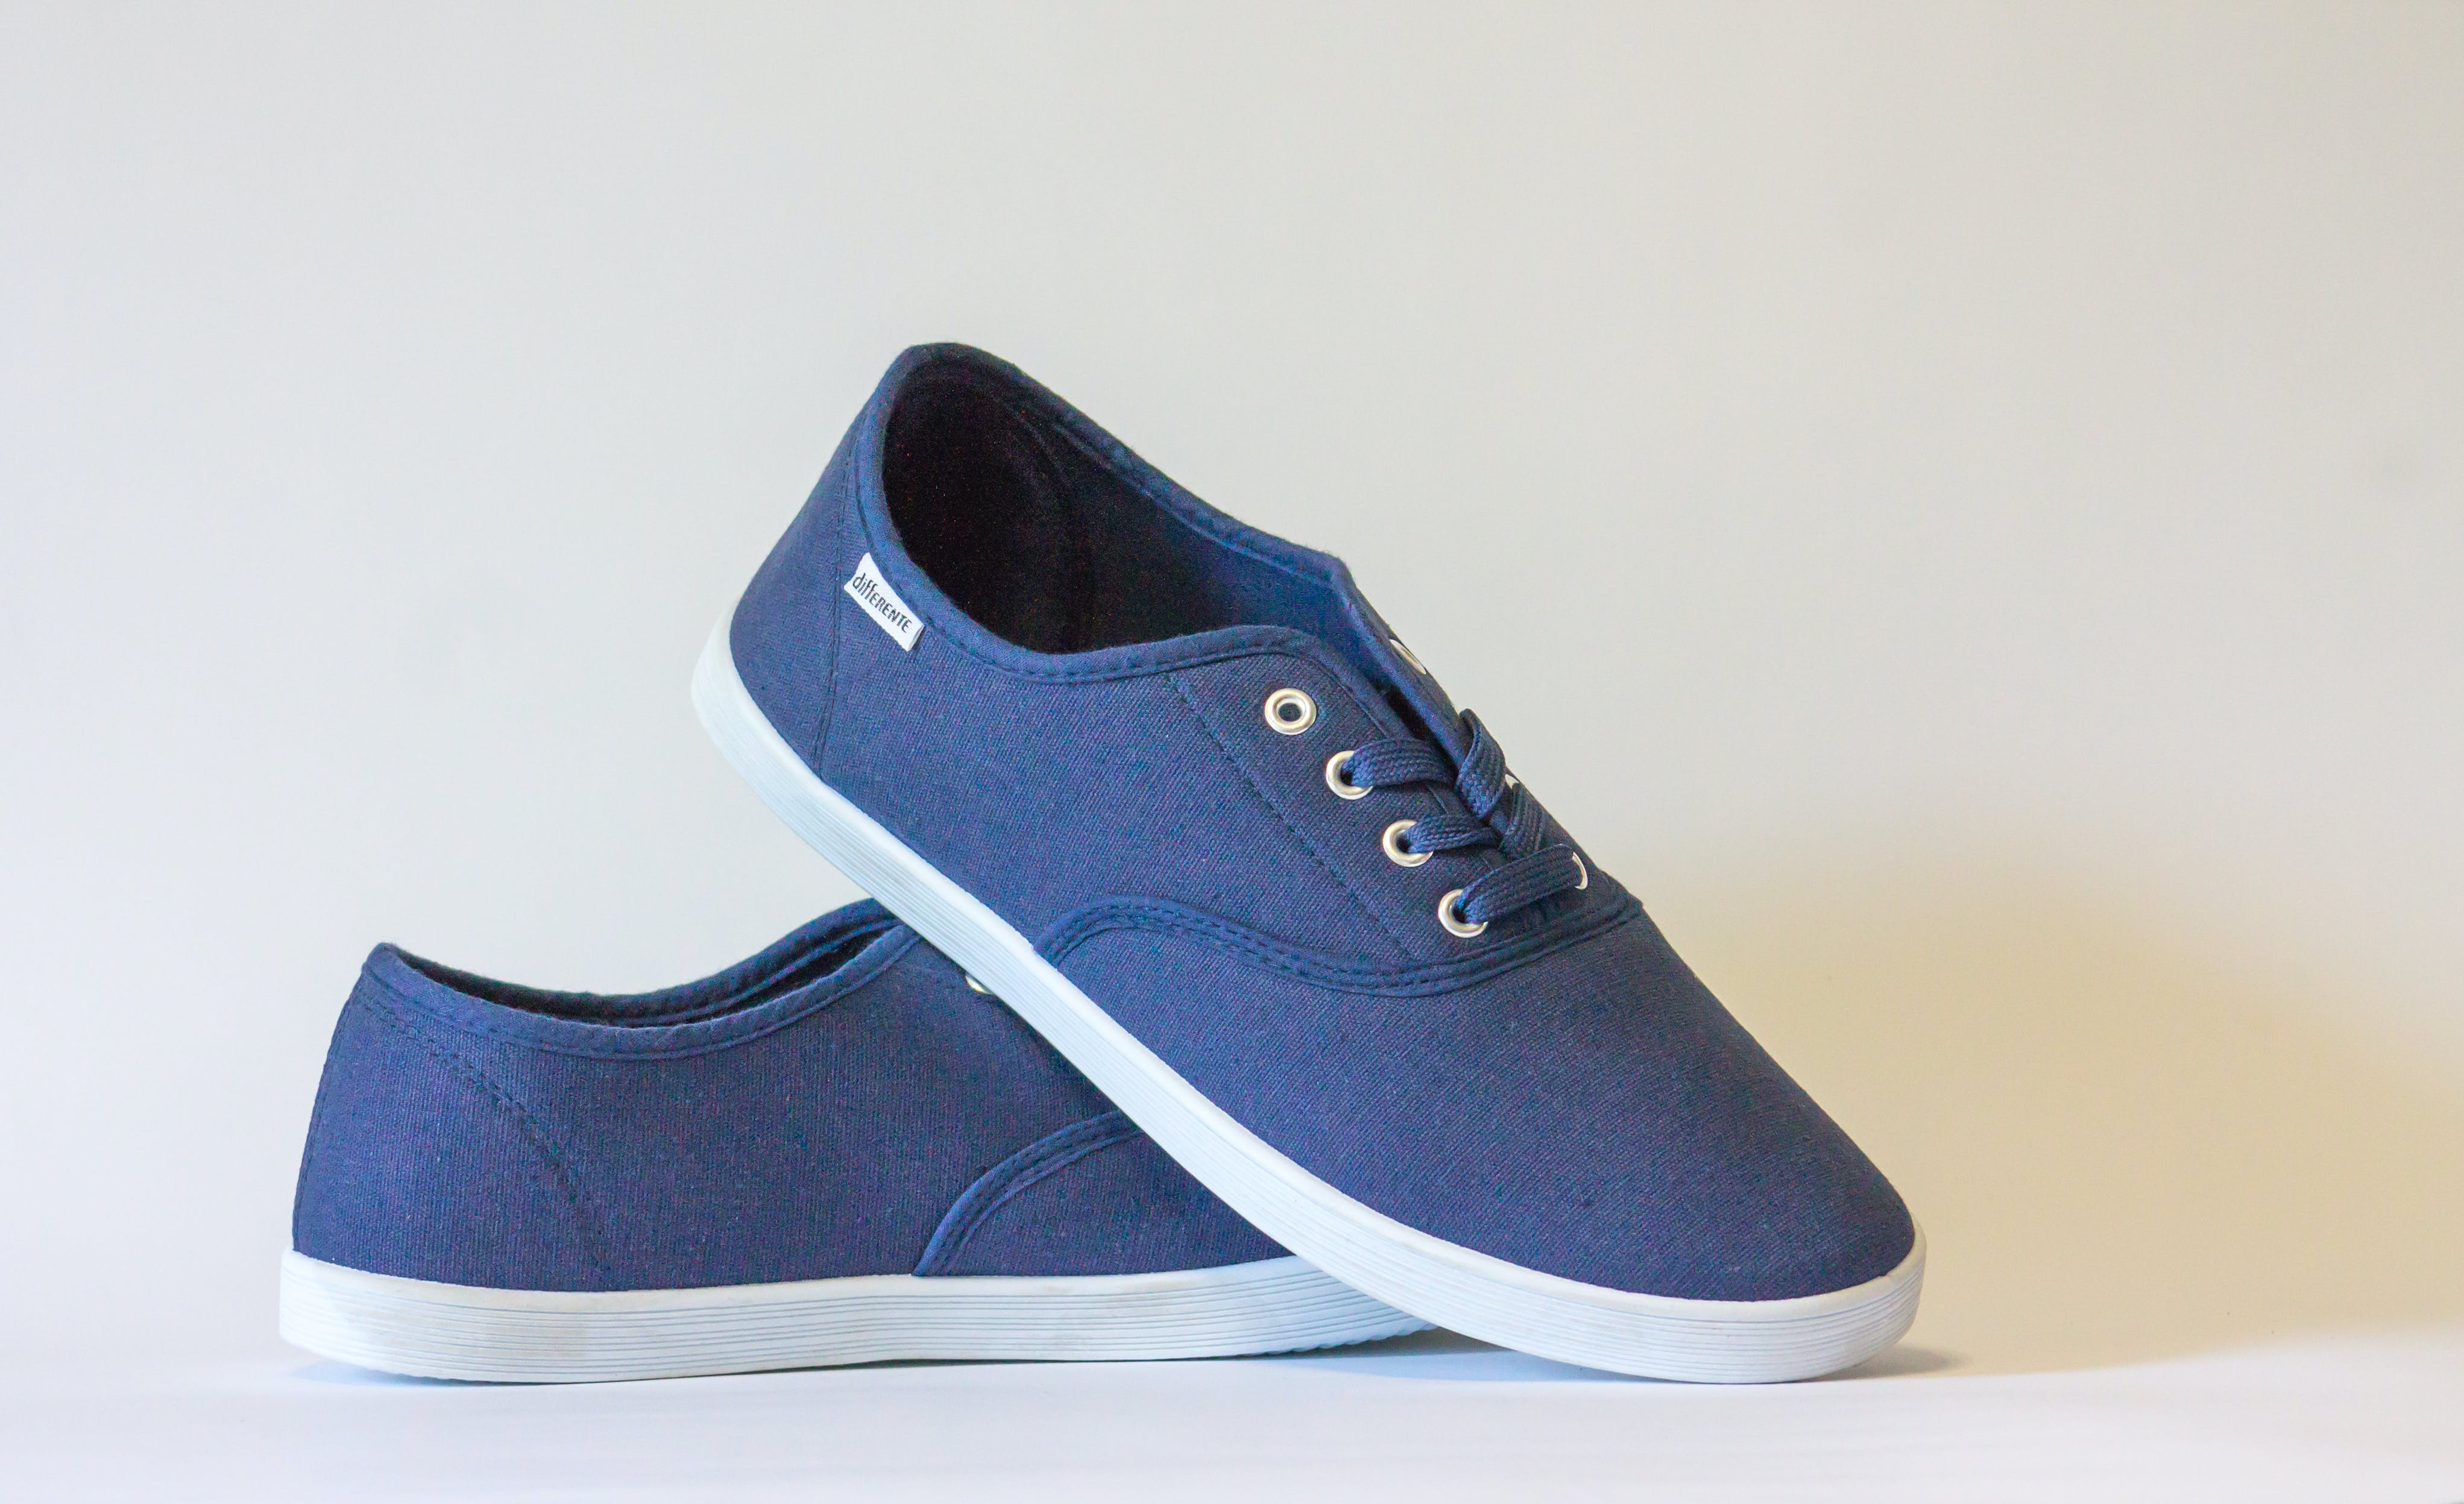 Pair of Blue Lace-up Sneakers